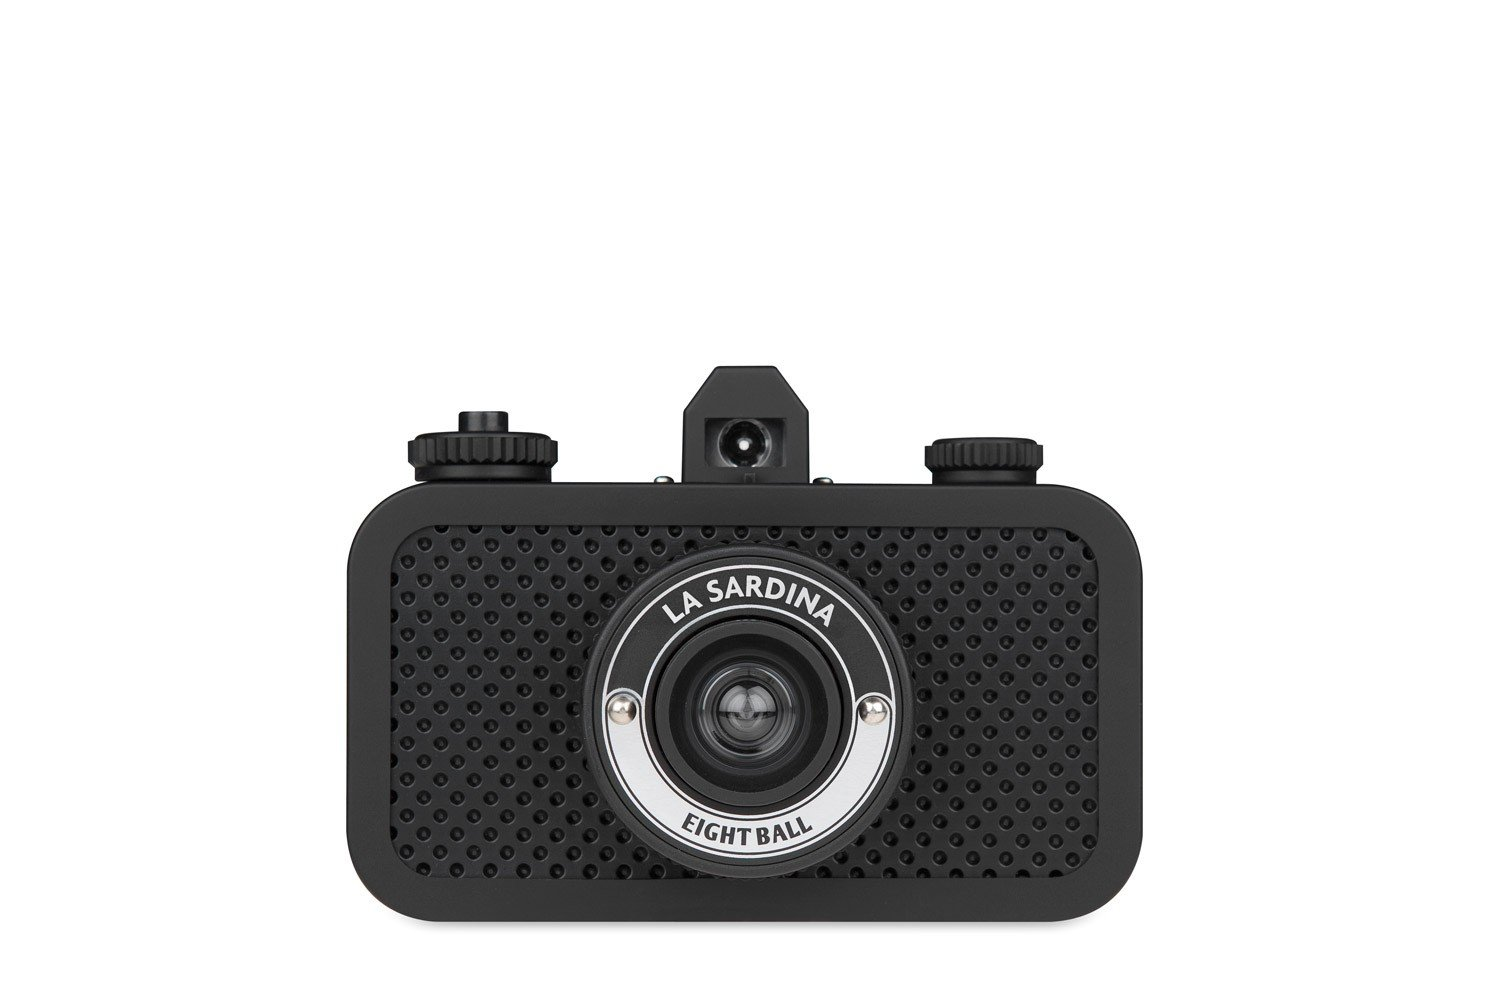 Lomography La Sardina 8Ball Camera [Camera] by Lomography